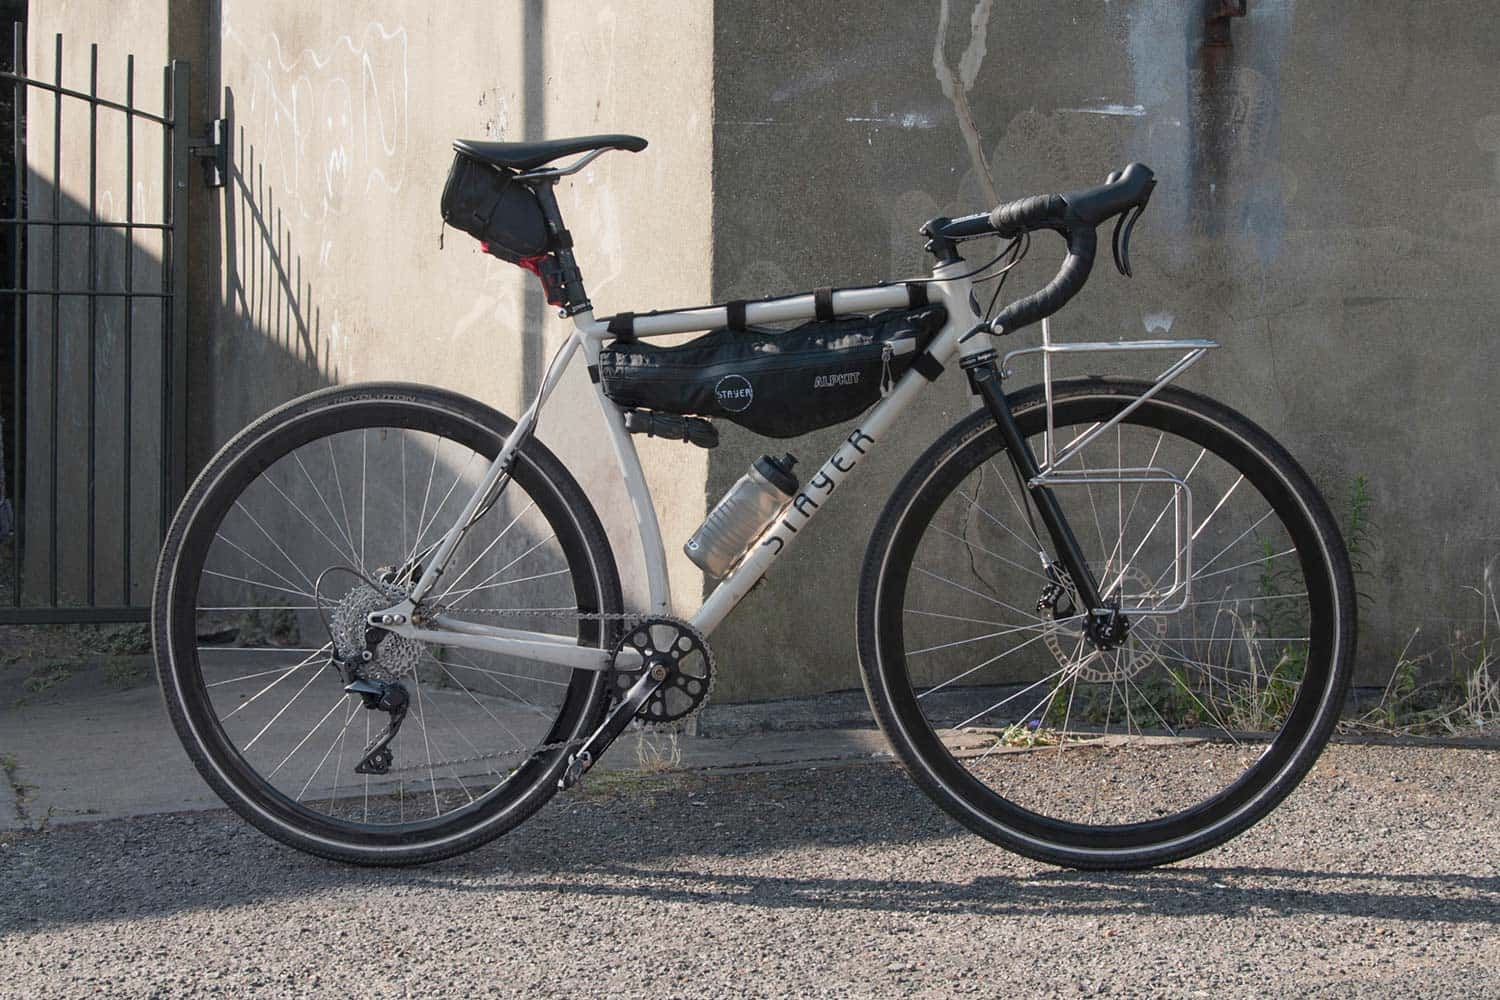 Stayer cycles Stayer bidon